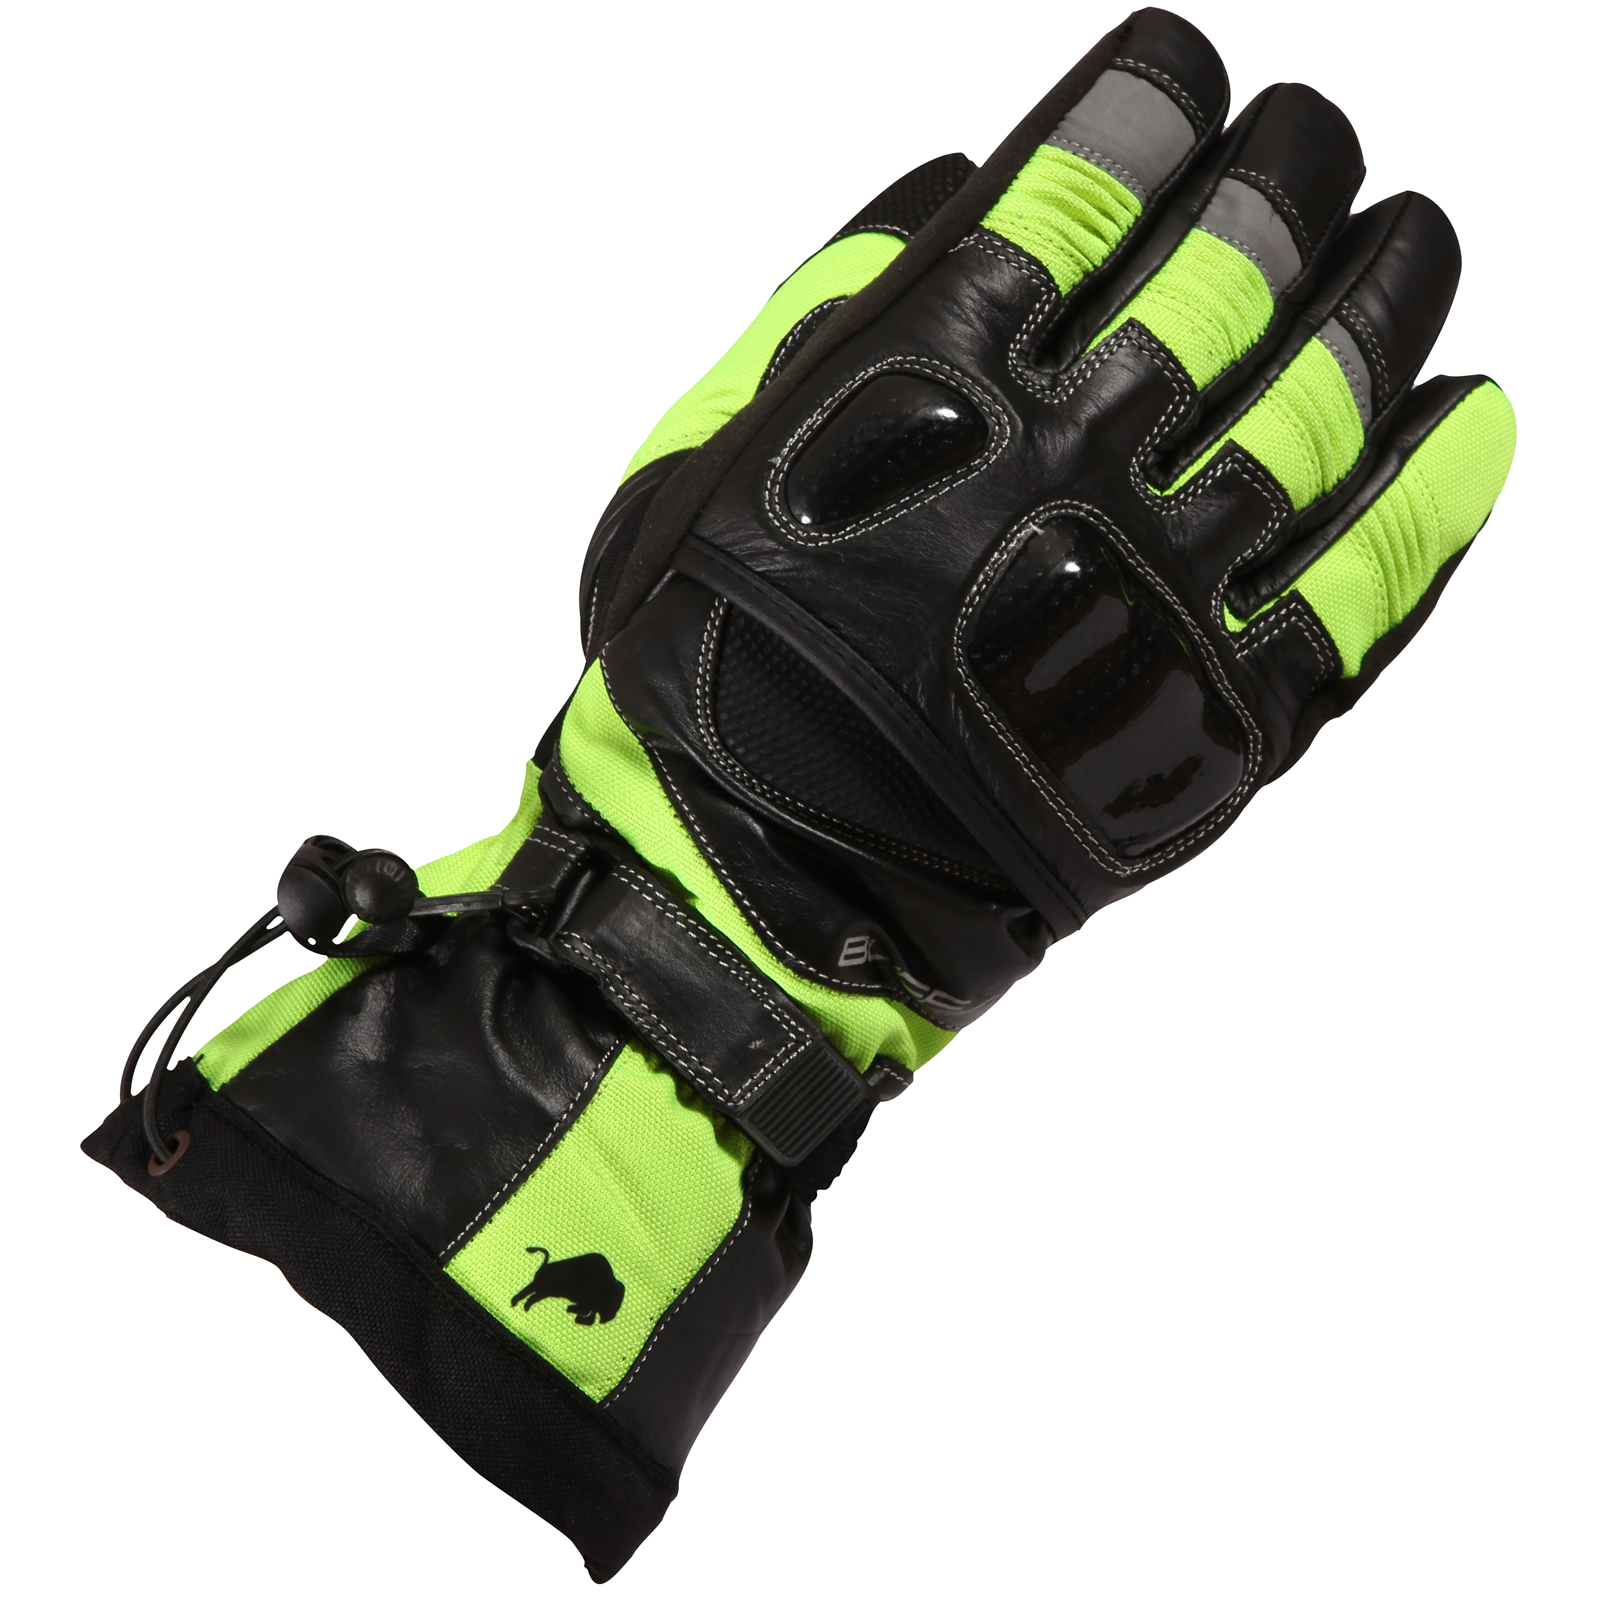 3pk wolverine leather work gloves extra large - 3pk Wolverine Leather Work Gloves Extra Large